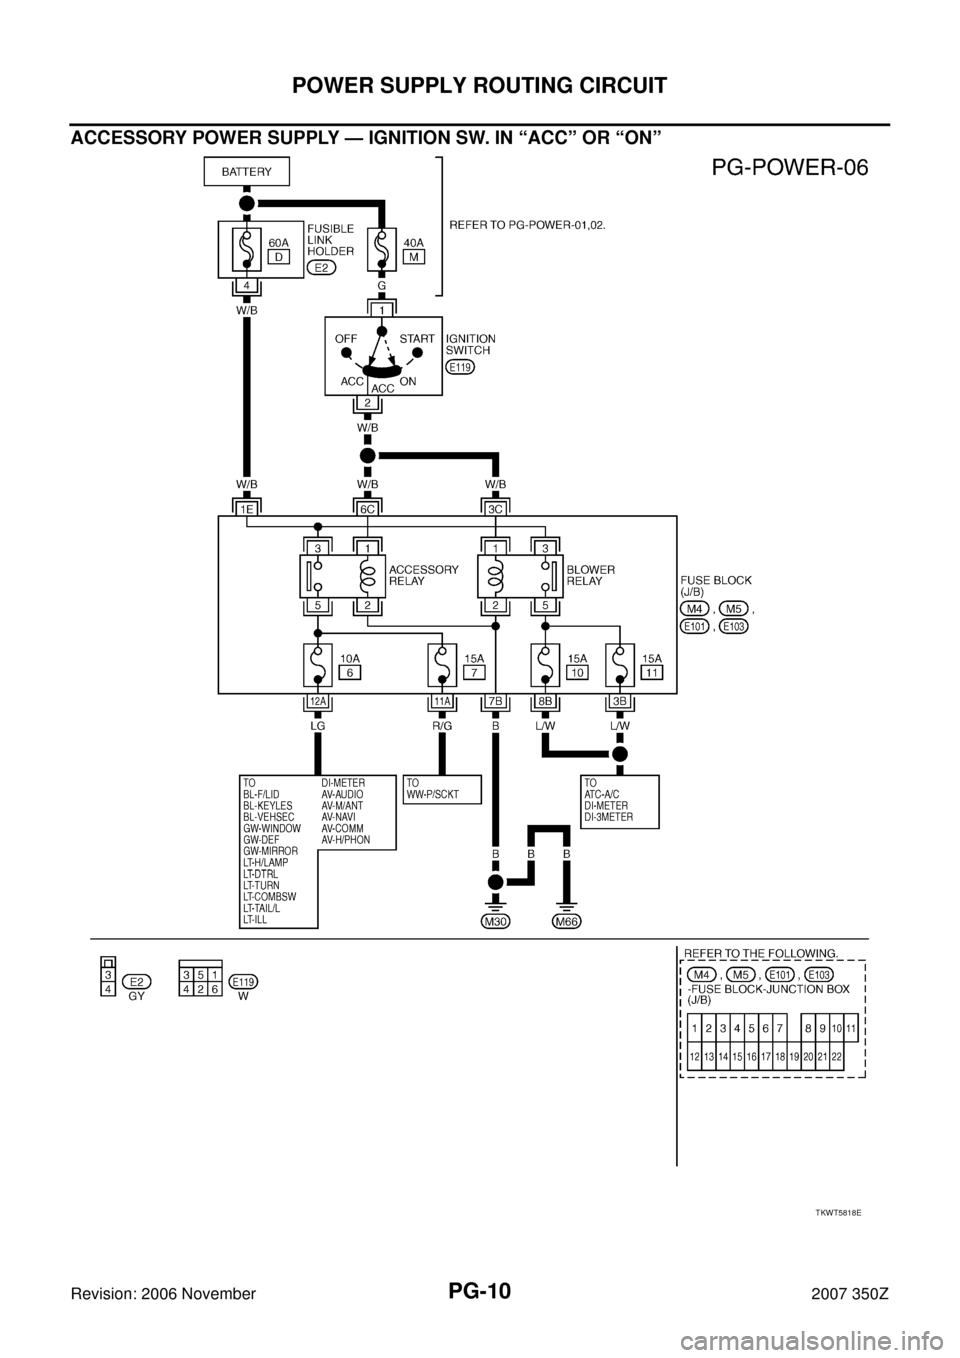 hight resolution of 67 camaro fuse block diagram data schema u2022 f250 fuse panel diagram 82 camaro fuse